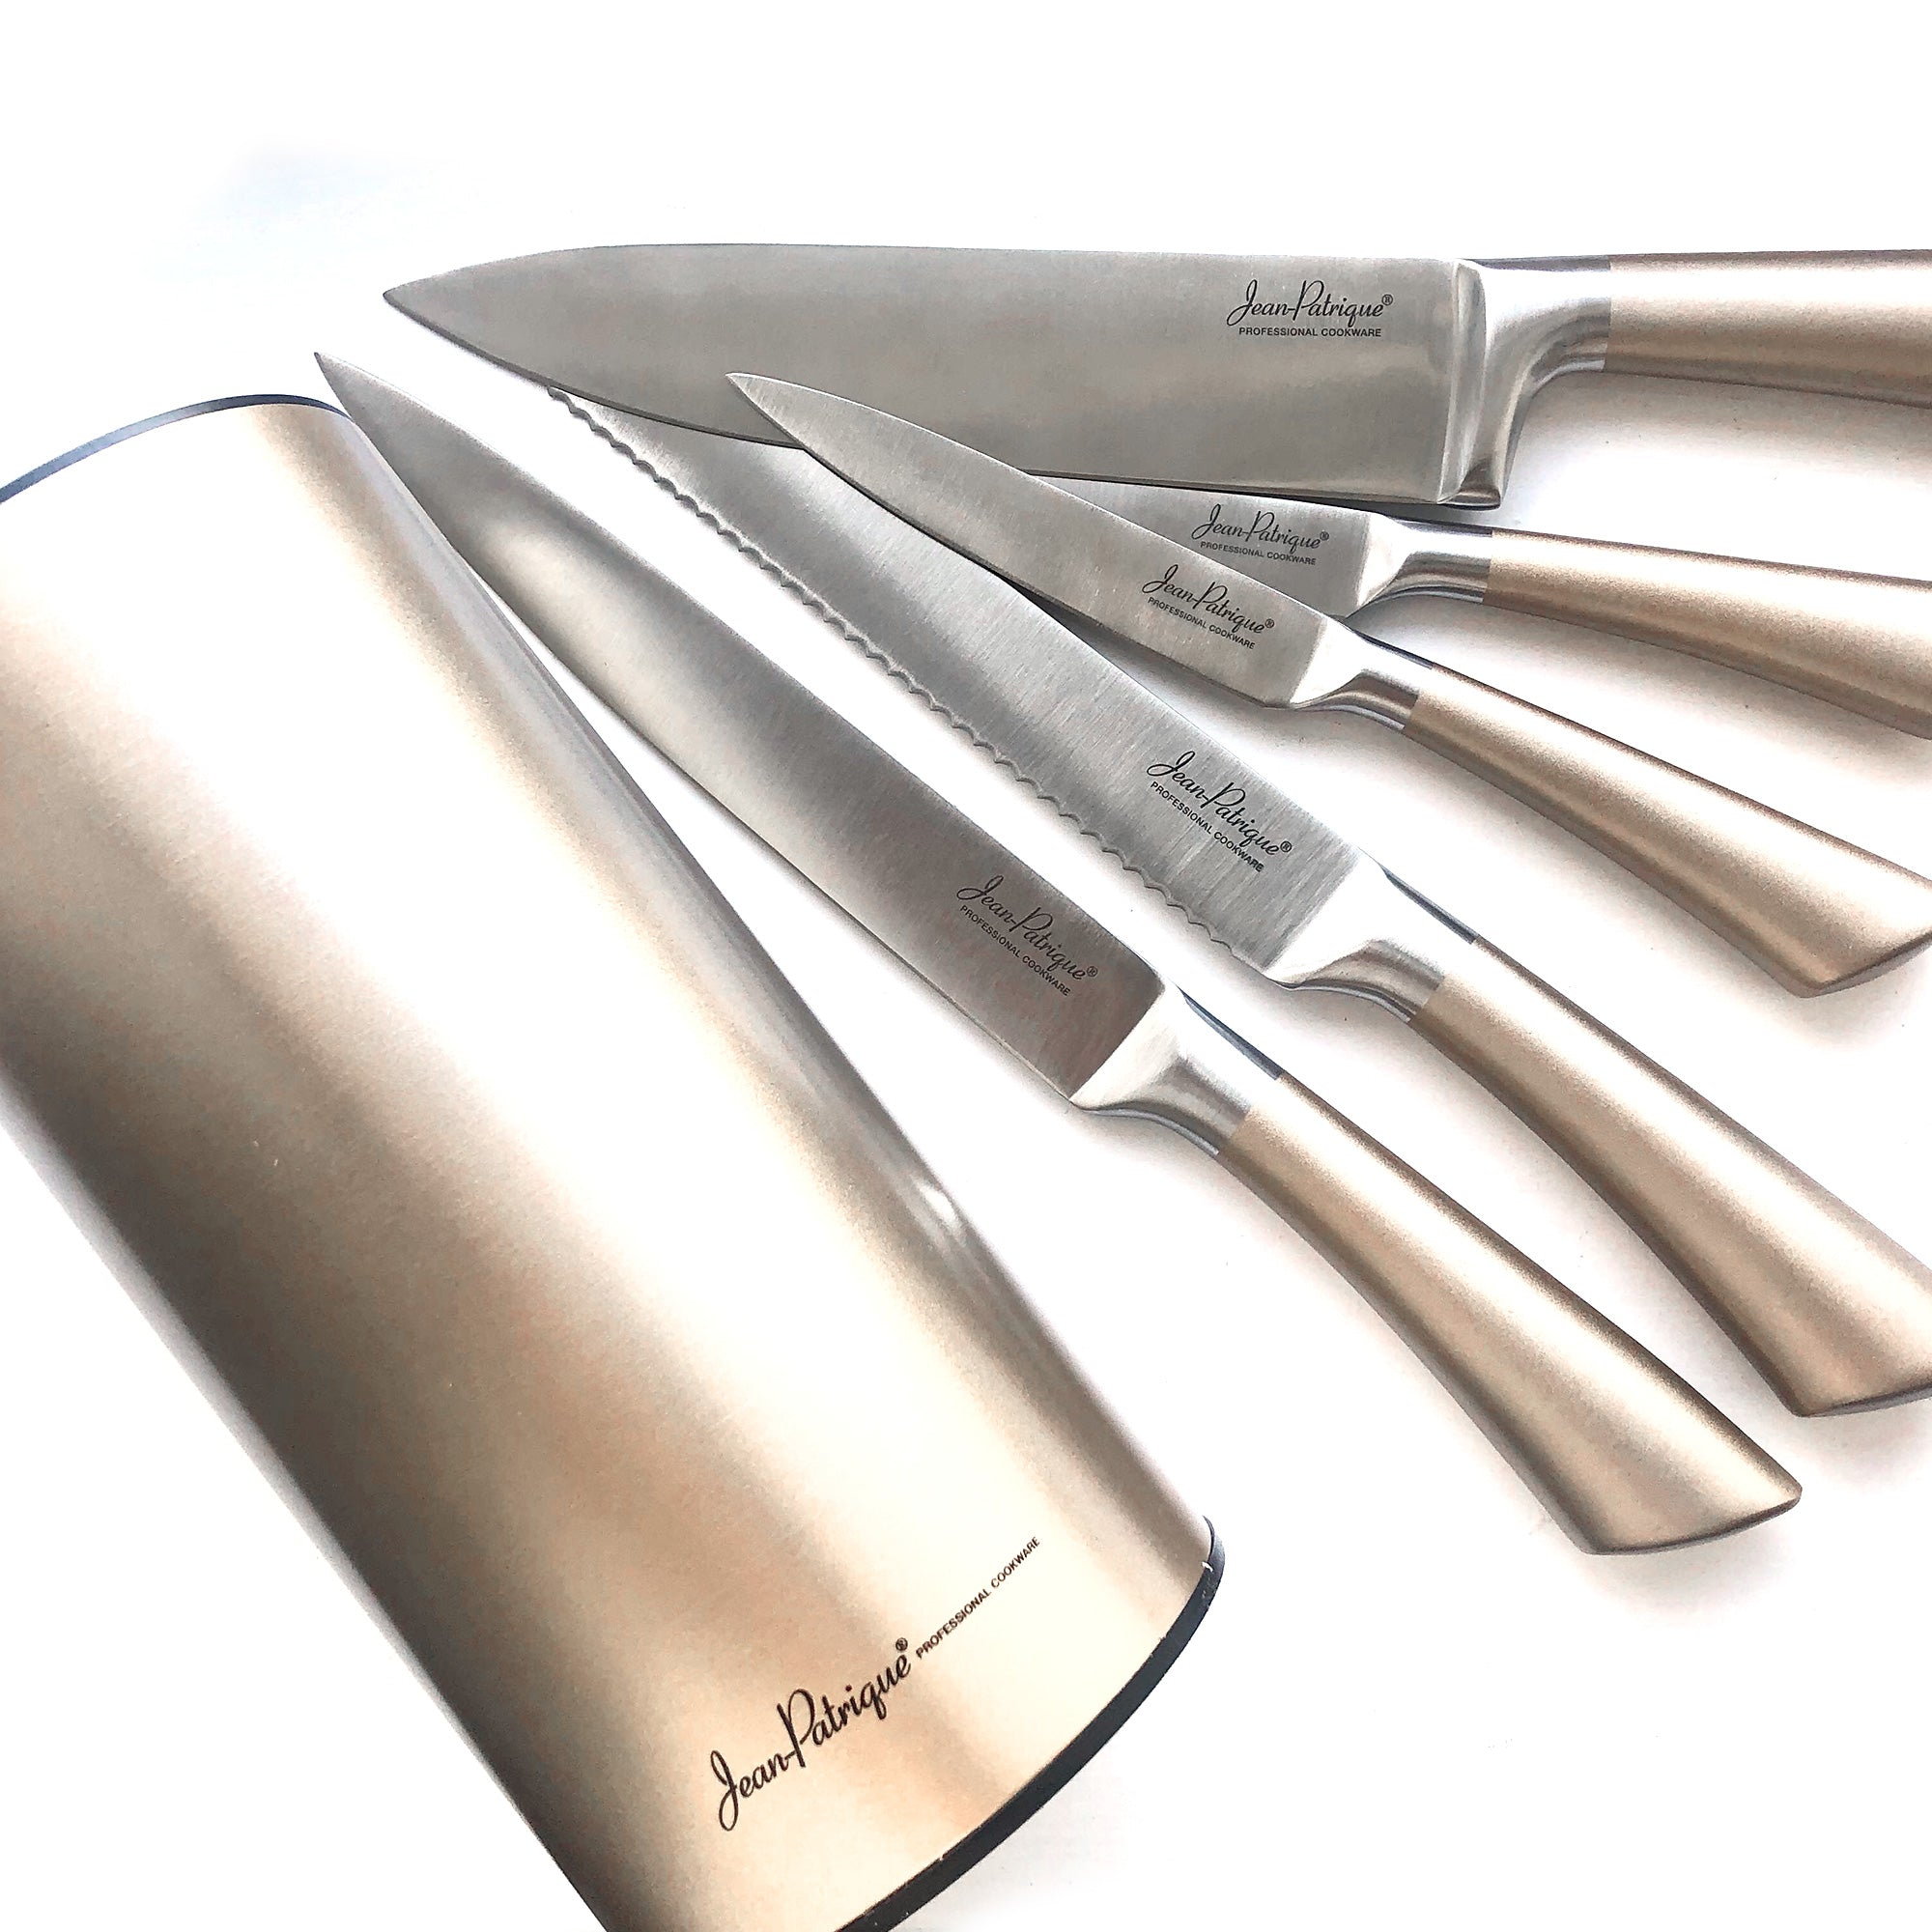 Midas Collection 5 Piece Knife Set with Block